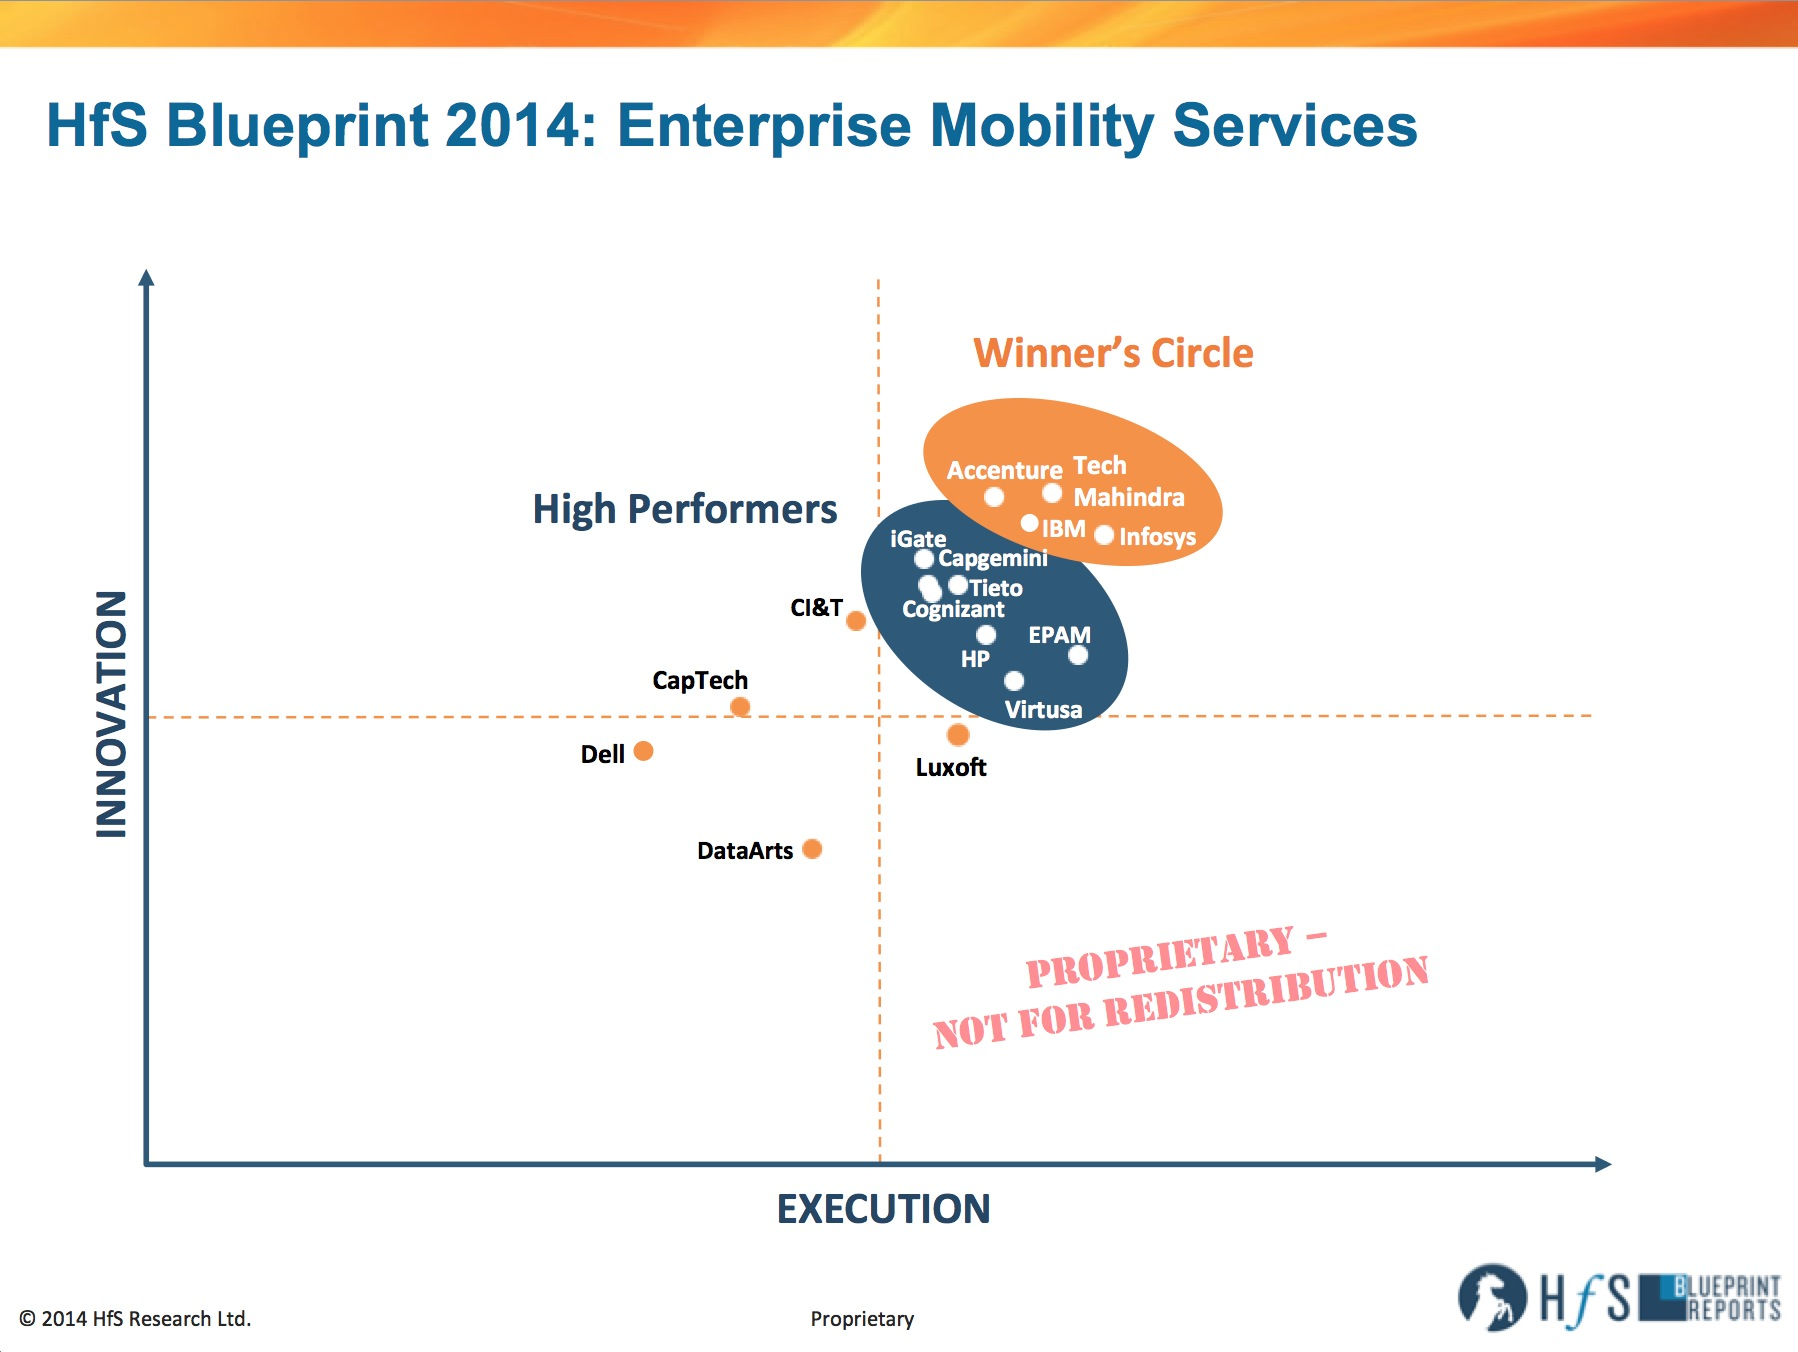 Four make Winner's Circle for Enterprise Mobility Services